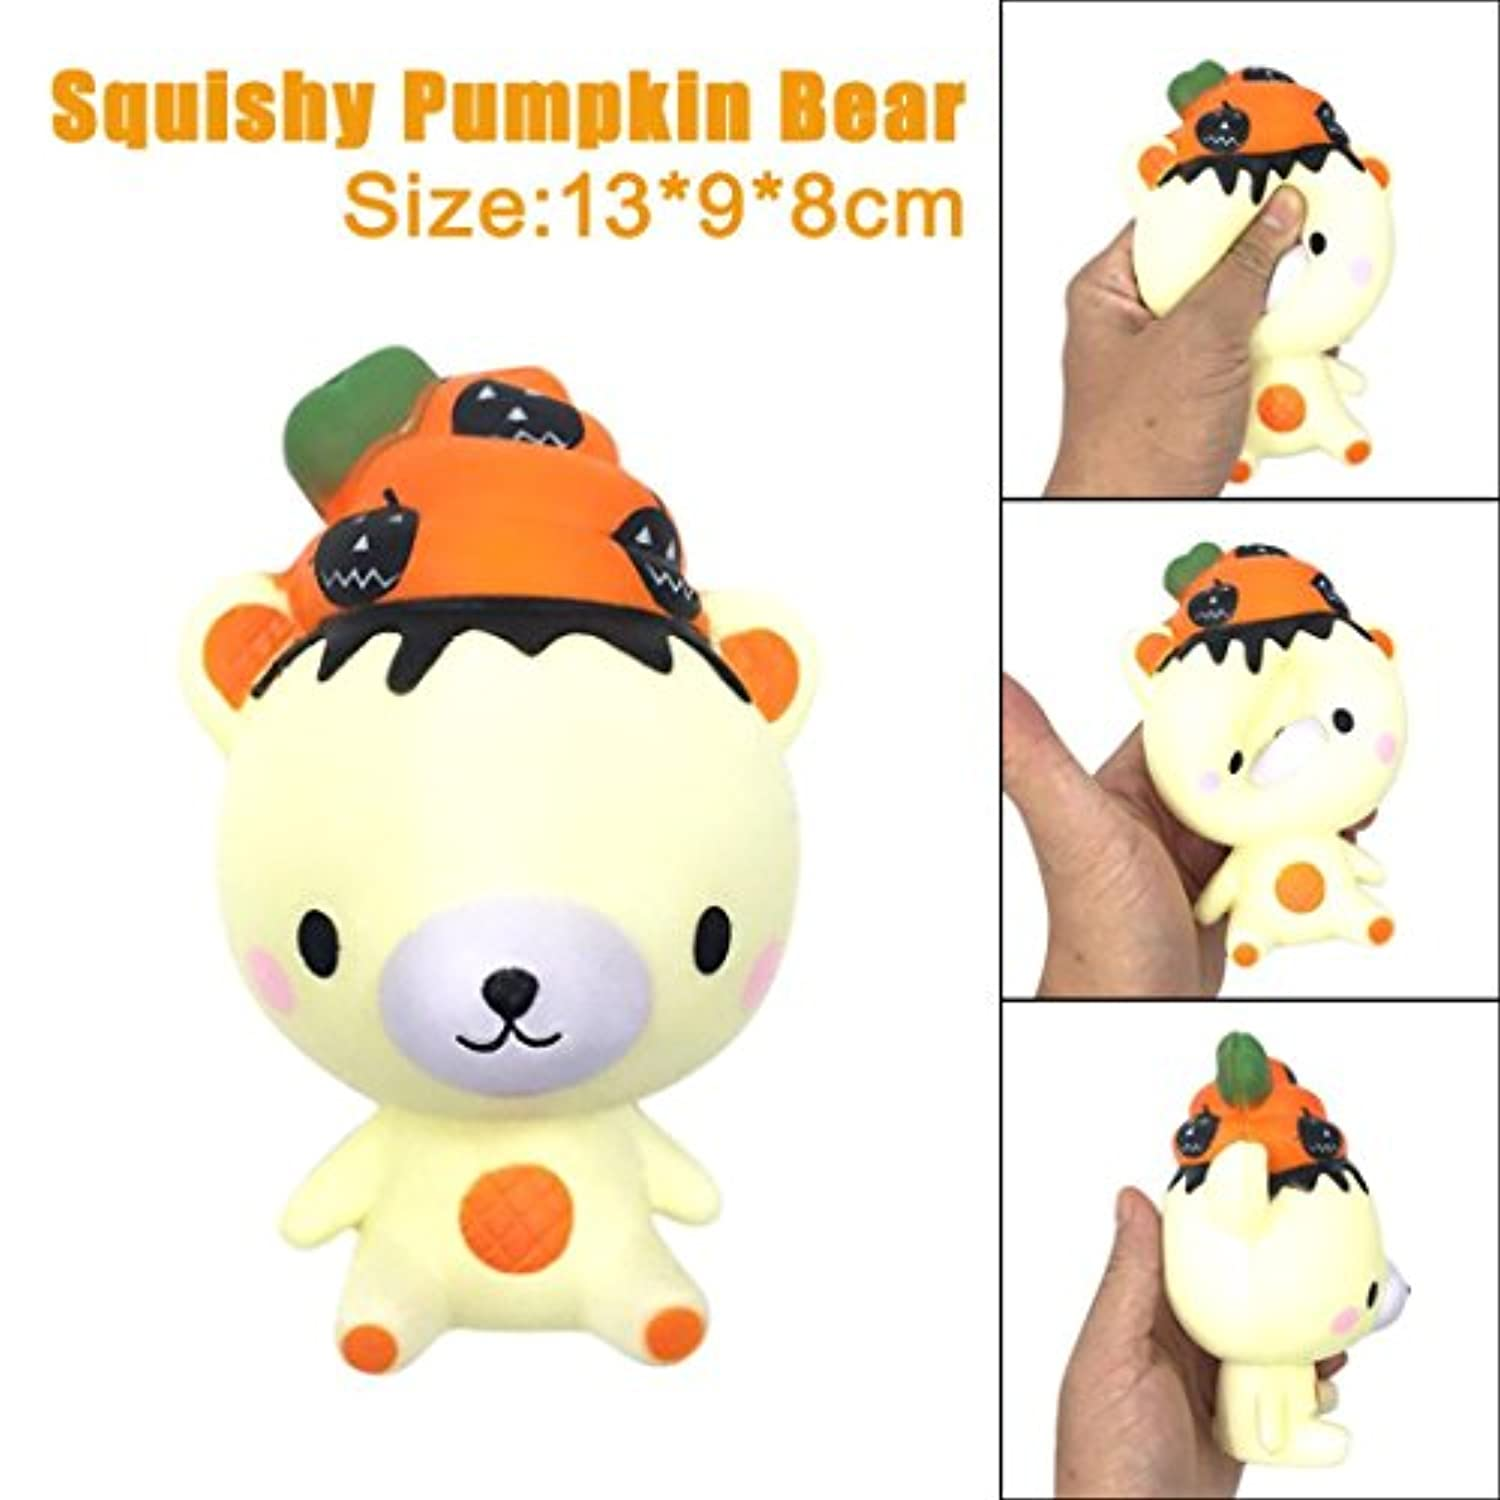 Rosiest低価格Kawaiiカット13 cm Squishy Poo Pumpkin Bear Relieve Anxiet Squeeze Slow Rising楽しいおもちゃギフトSquishボールAnxietyレリーフ